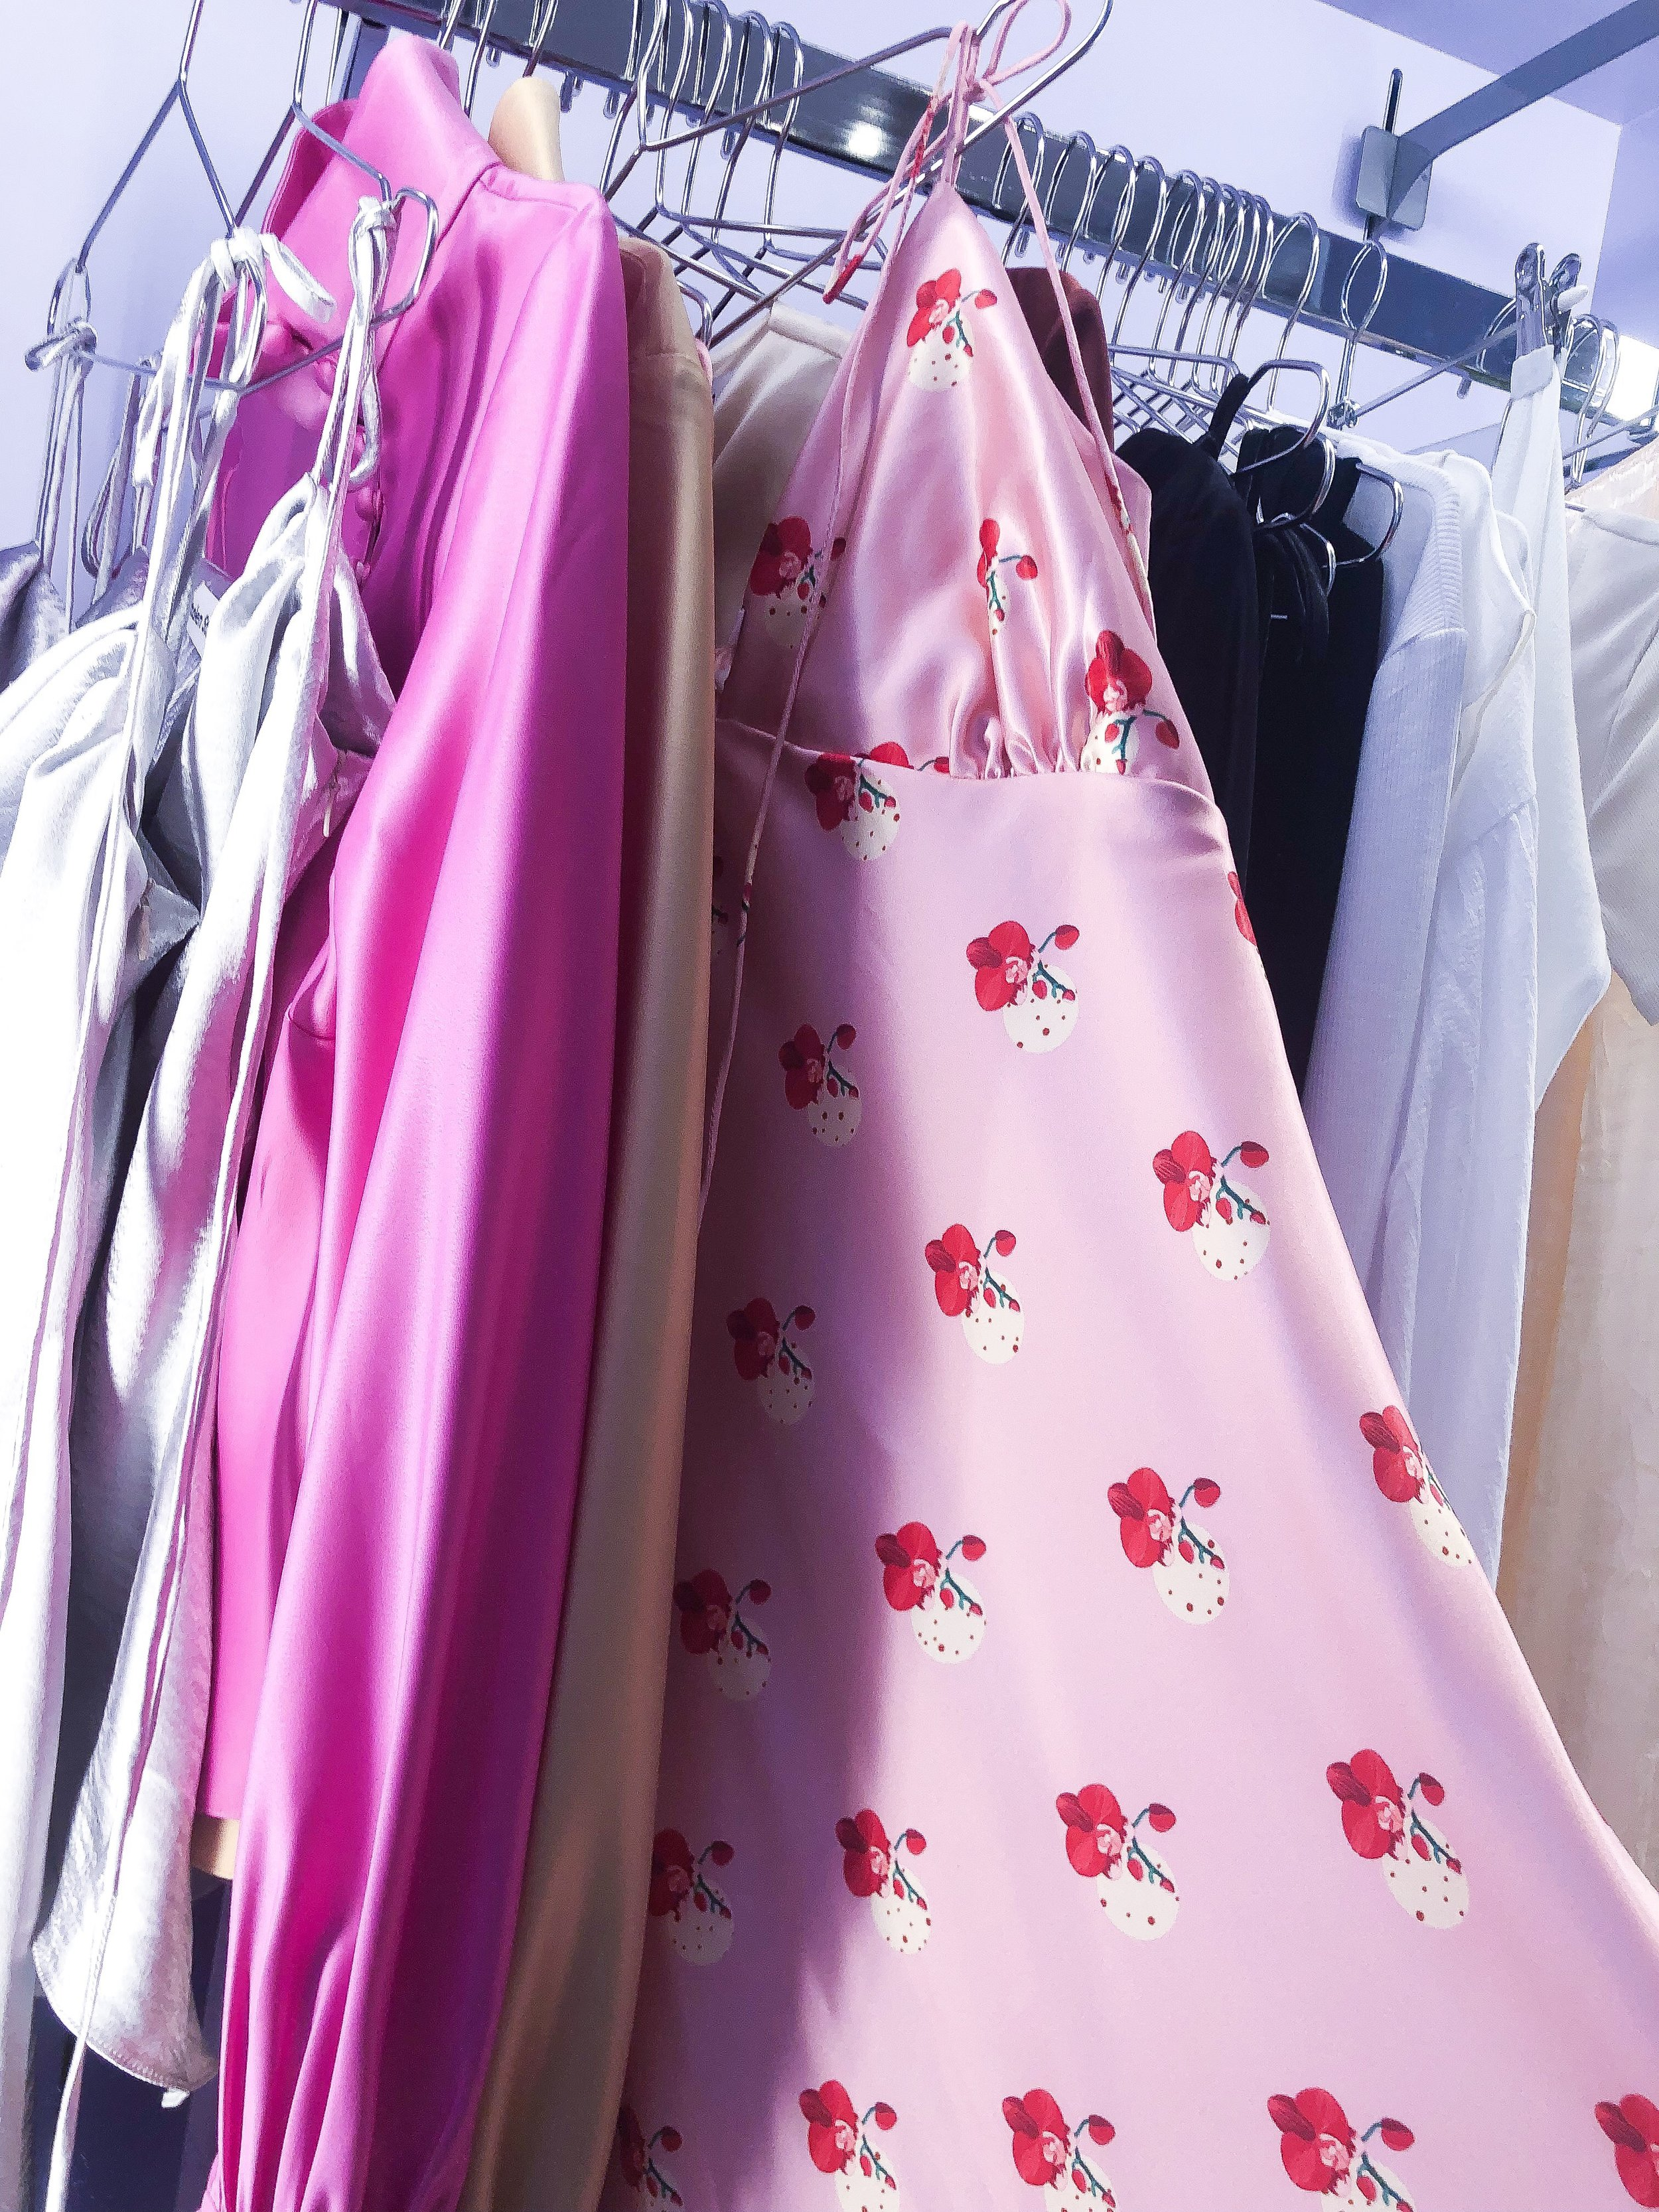 Onarin dress and blouses